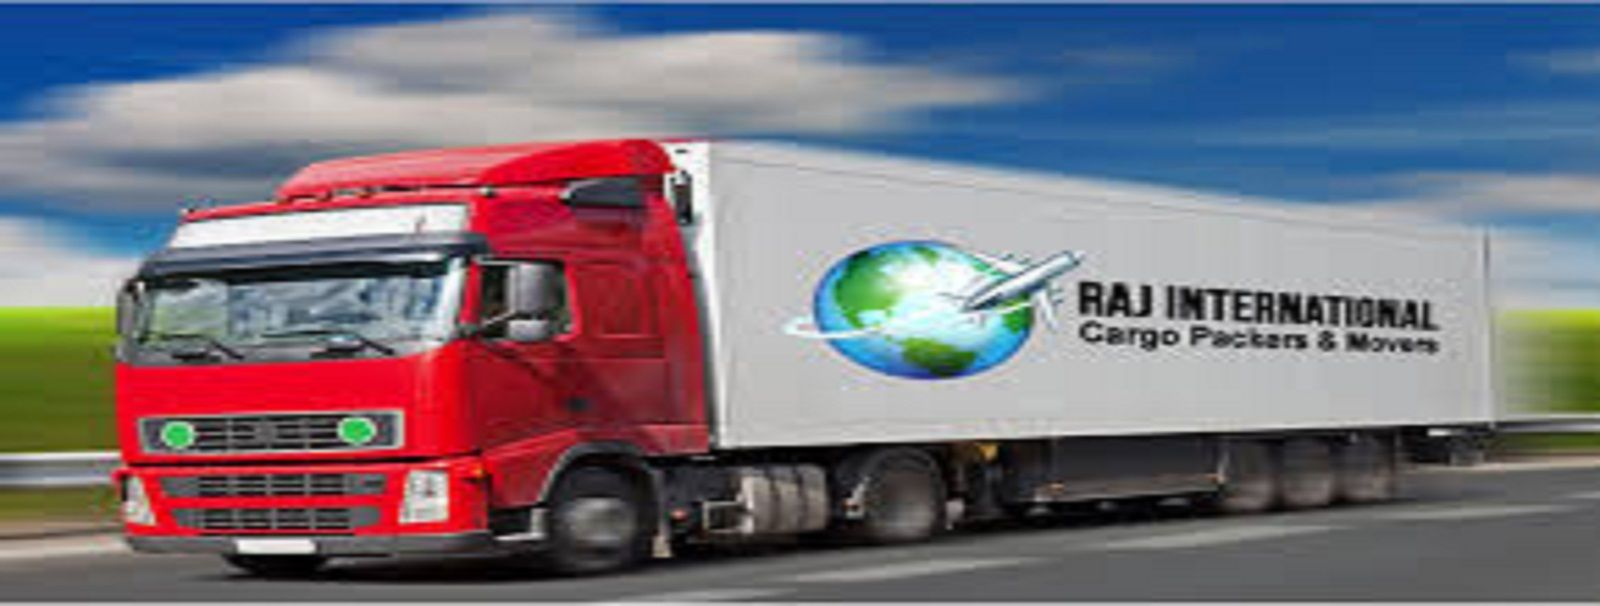 Packers and Movers in Chandigarh |7790012001